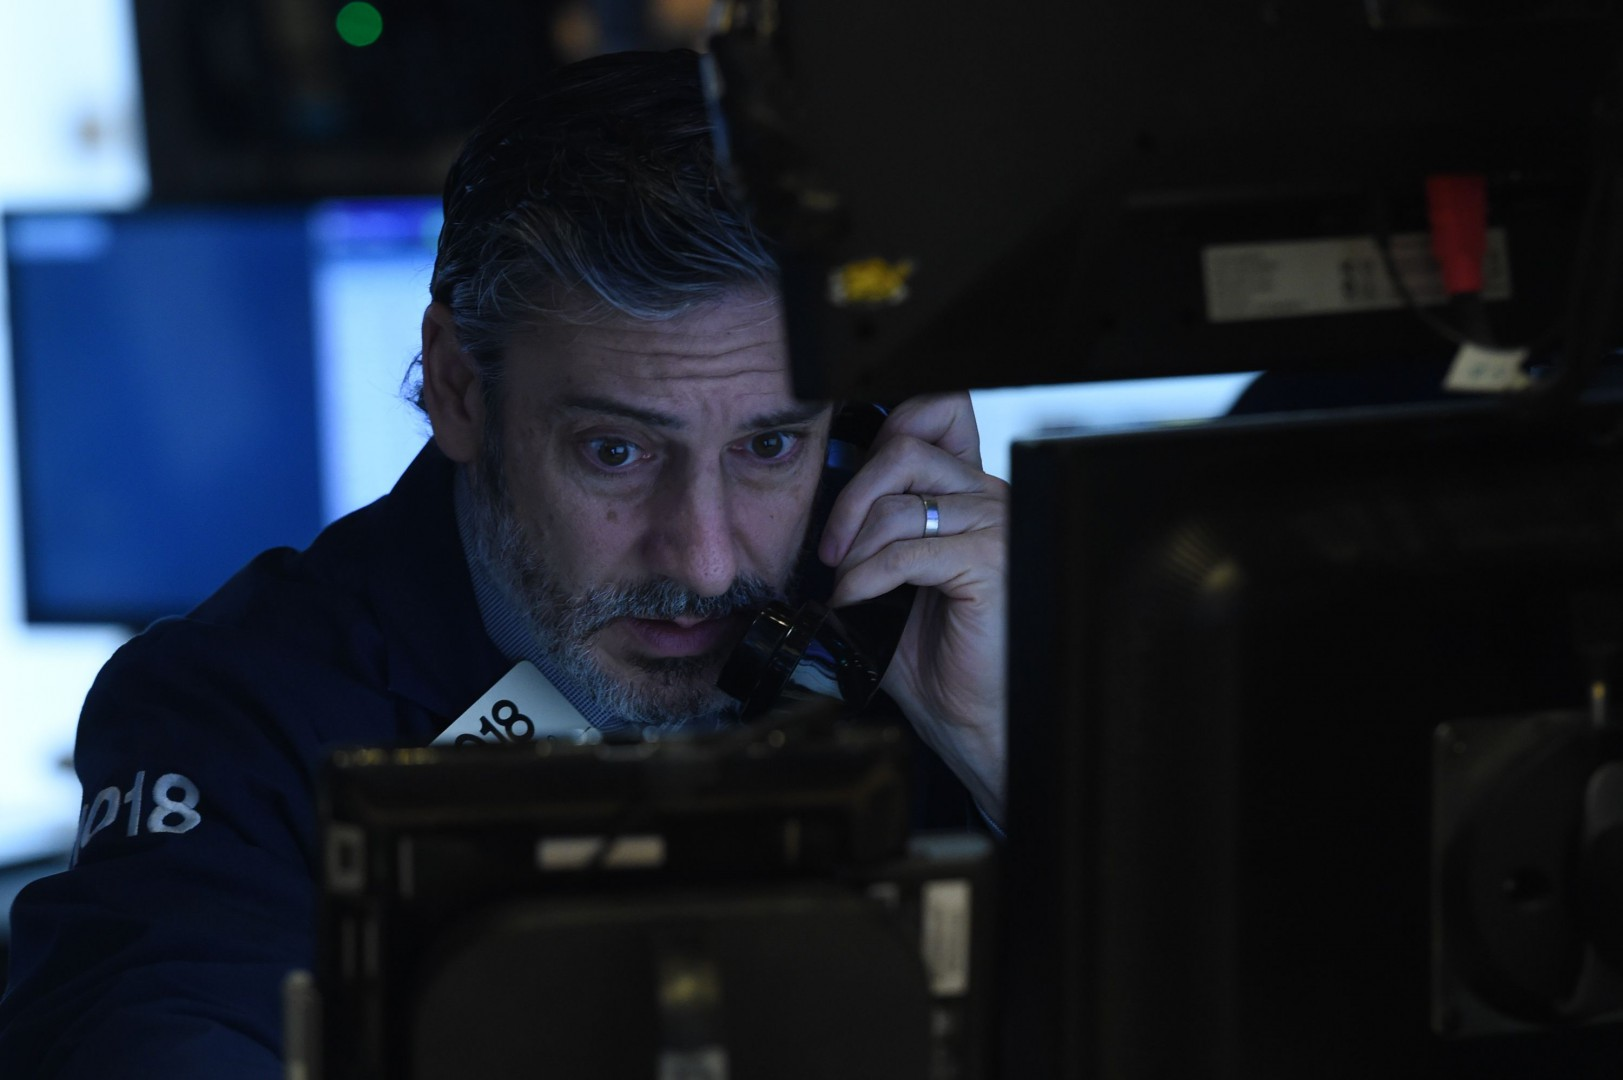 Traders work on the floor at the closing bell of the Dow Industrial Average at the New York Stock Exchange on January 10, 2019 in New York. - Wall Street stocks rose for a fifth straight session on Thursday, overcoming disappointing holiday sales from Macy's and other retailers following a day of choppy trade.The Dow Jones Industrial Average finished up 0.5 percent at 24,000.76.The broad-based S&P 500 also gained 0.5 percent to 2,596.59, while the tech-rich Nasdaq Composite Index advanced 0.4 percent to 6,986.07. (Photo by Bryan R. Smith / AFP)